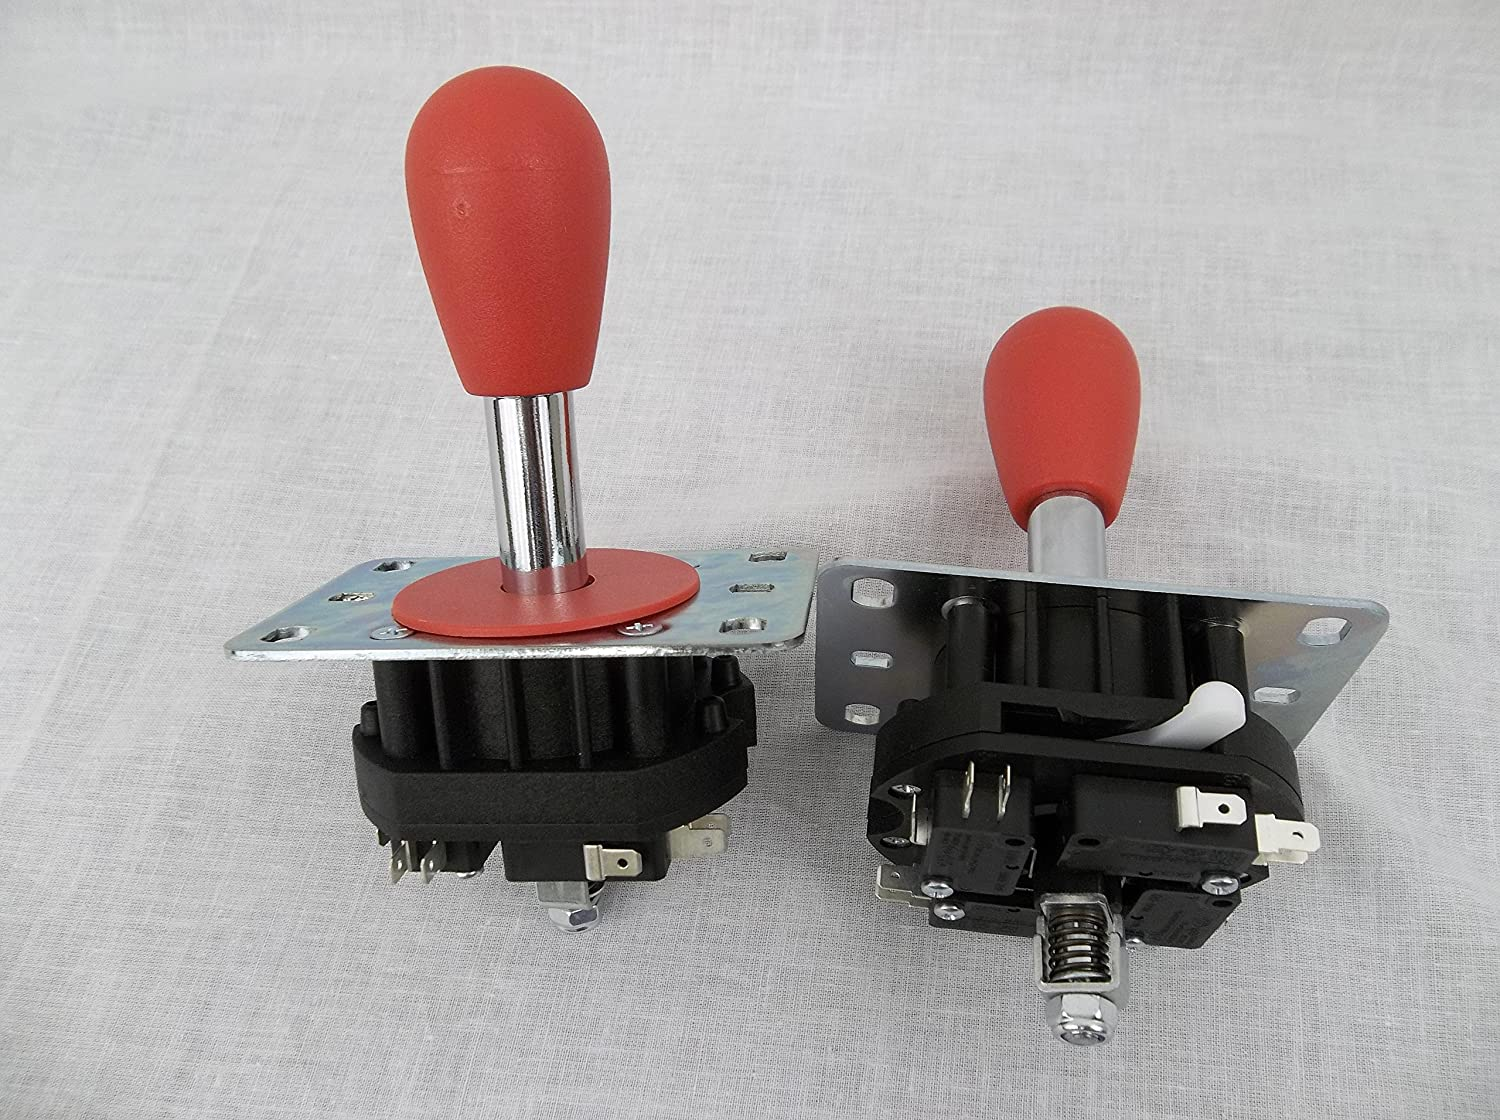 RetroArcade us Mag-stik-Plus Arcade Joystick Player Switchable from 4 to 8  Way from The Top of The Panel